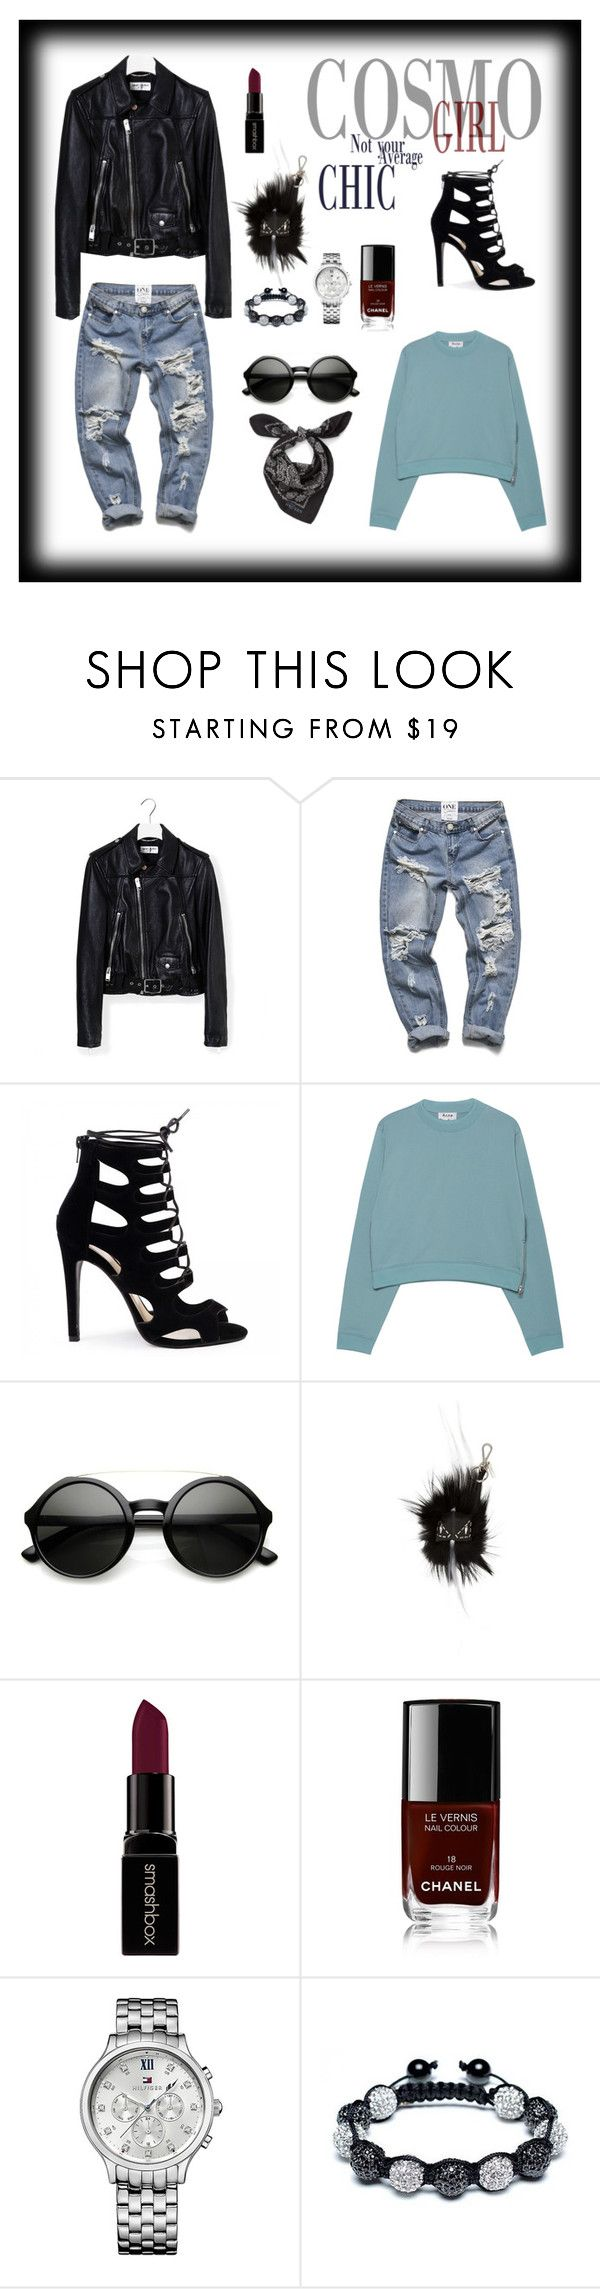 """Cosmo Girl - tomboy chic"" by shop-styleloft on Polyvore featuring Yves Saint Laurent, Acne Studios, Fendi, Smashbox, Chanel, Tommy Hilfiger, Bling Jewelry and Alexander McQueen"